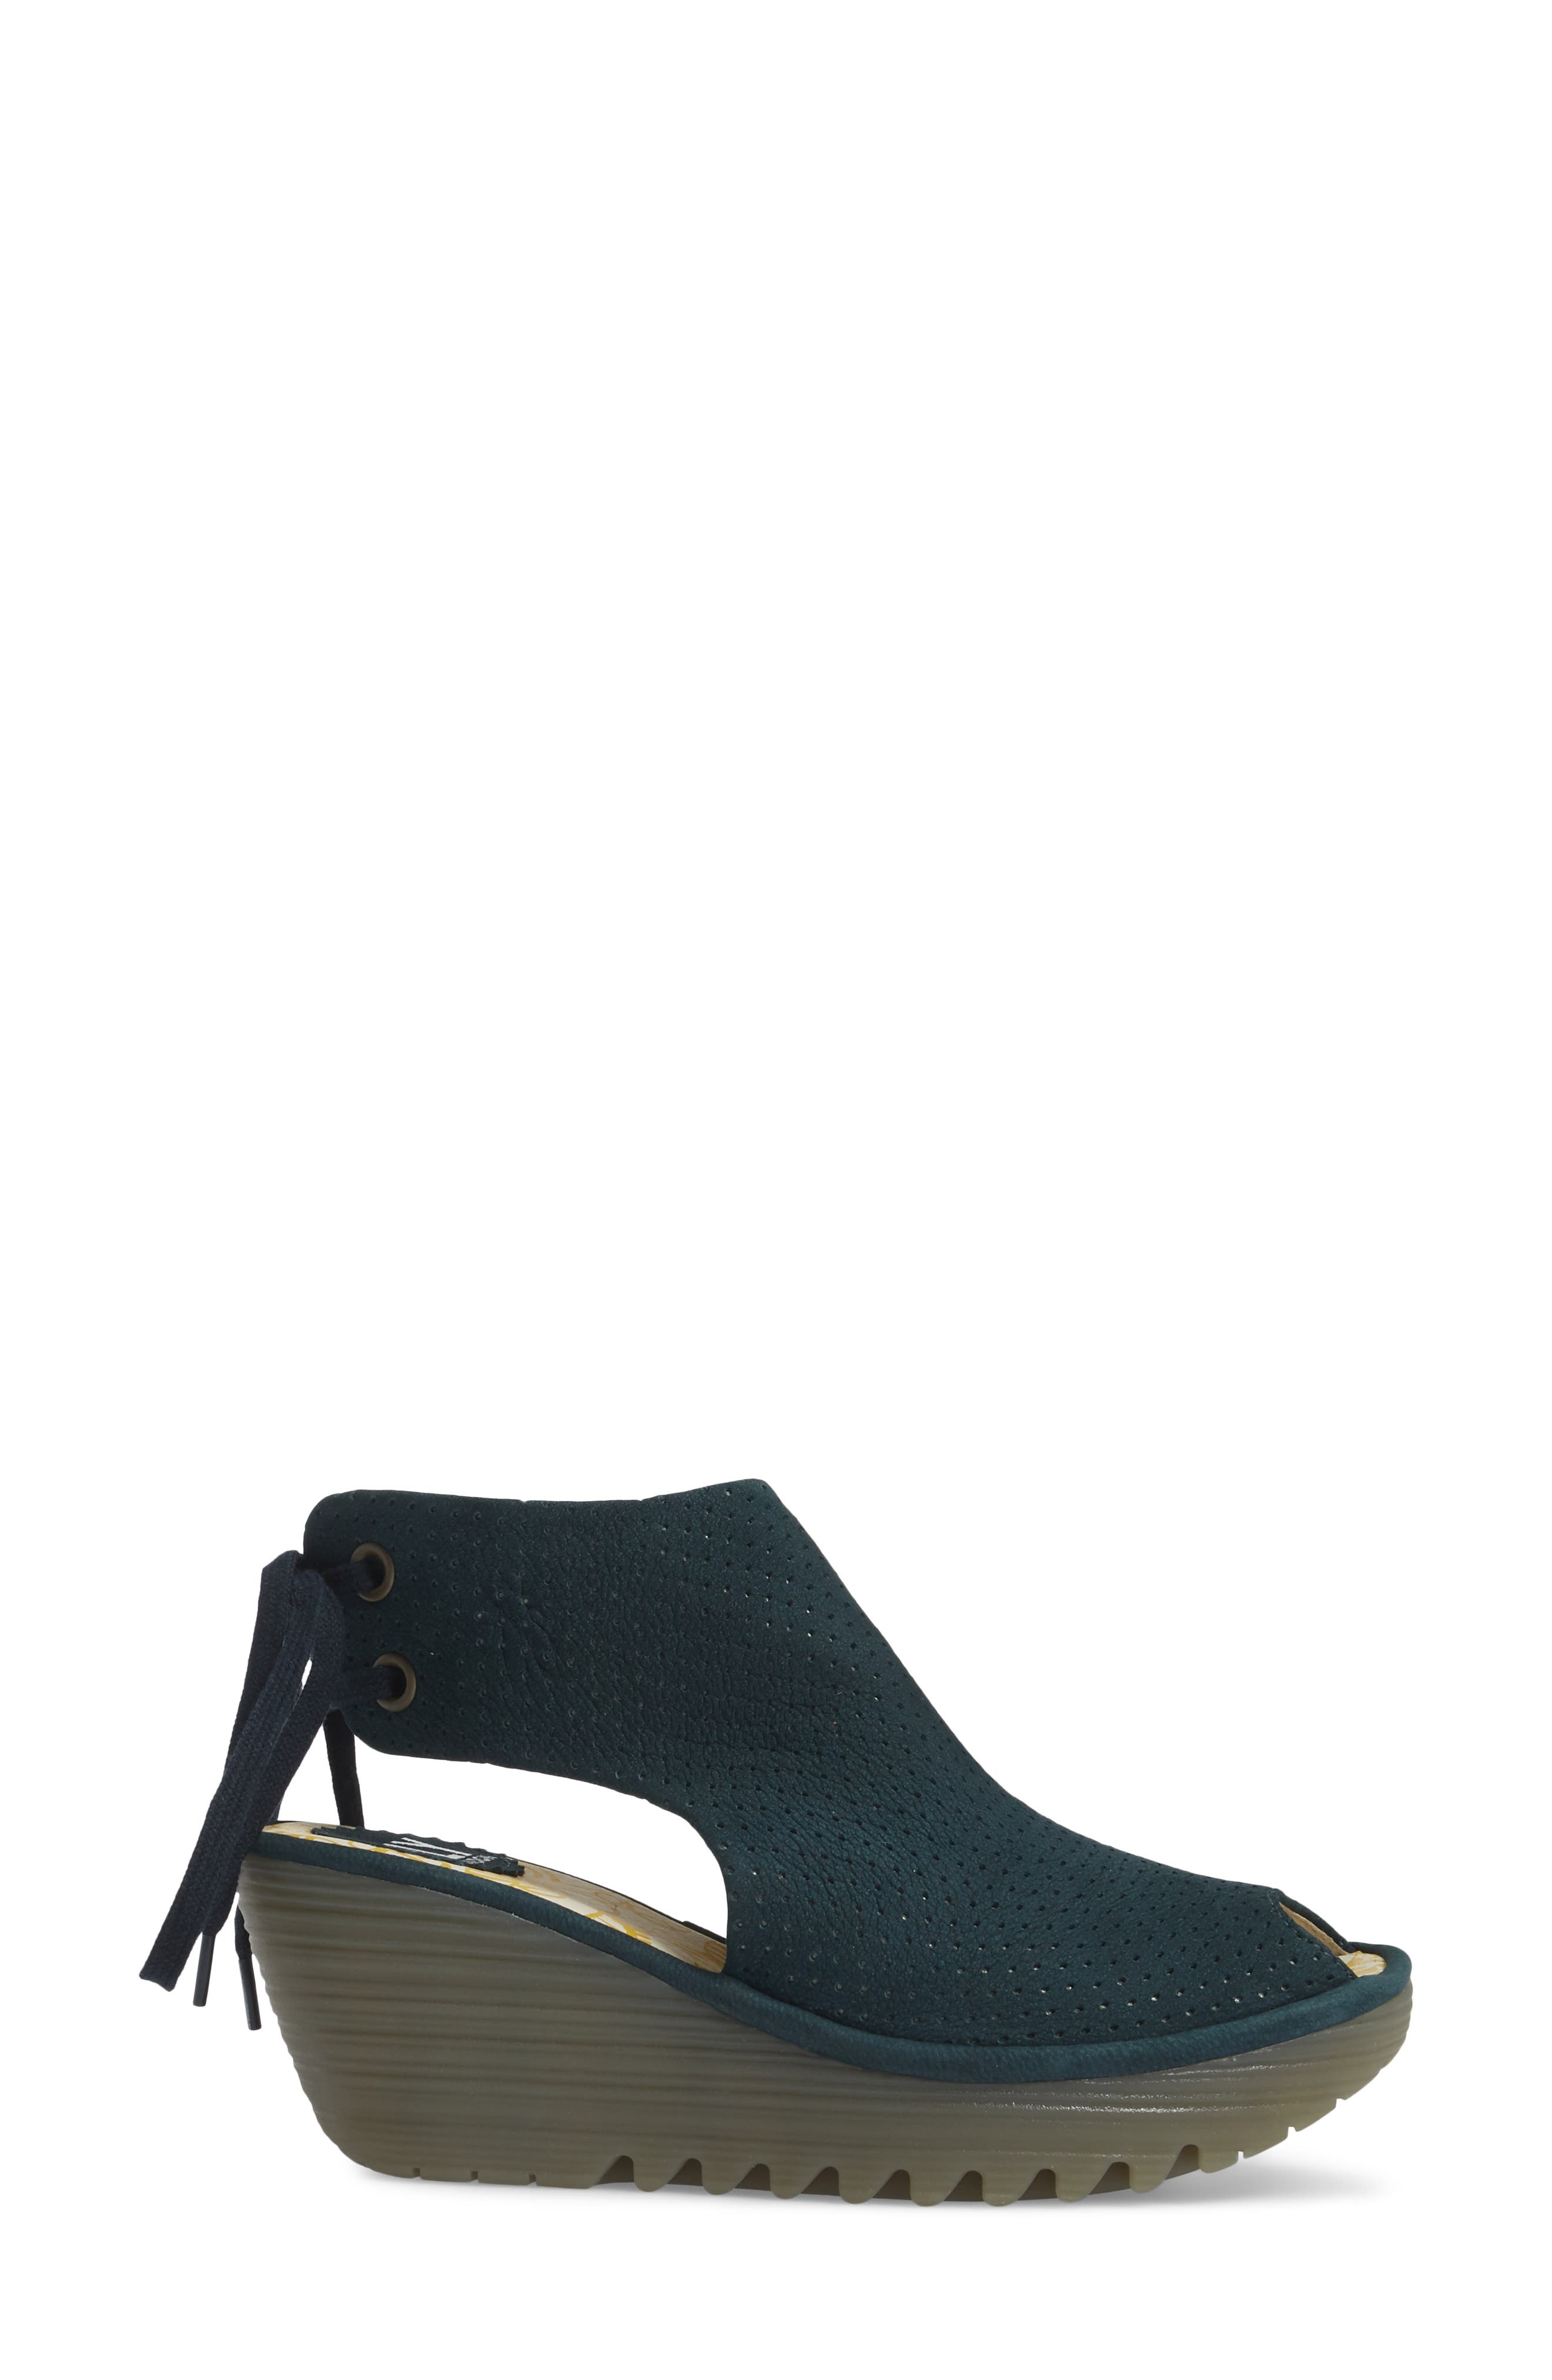 Ypul Wedge Sandal,                             Alternate thumbnail 3, color,                             Reef Cupido Leather